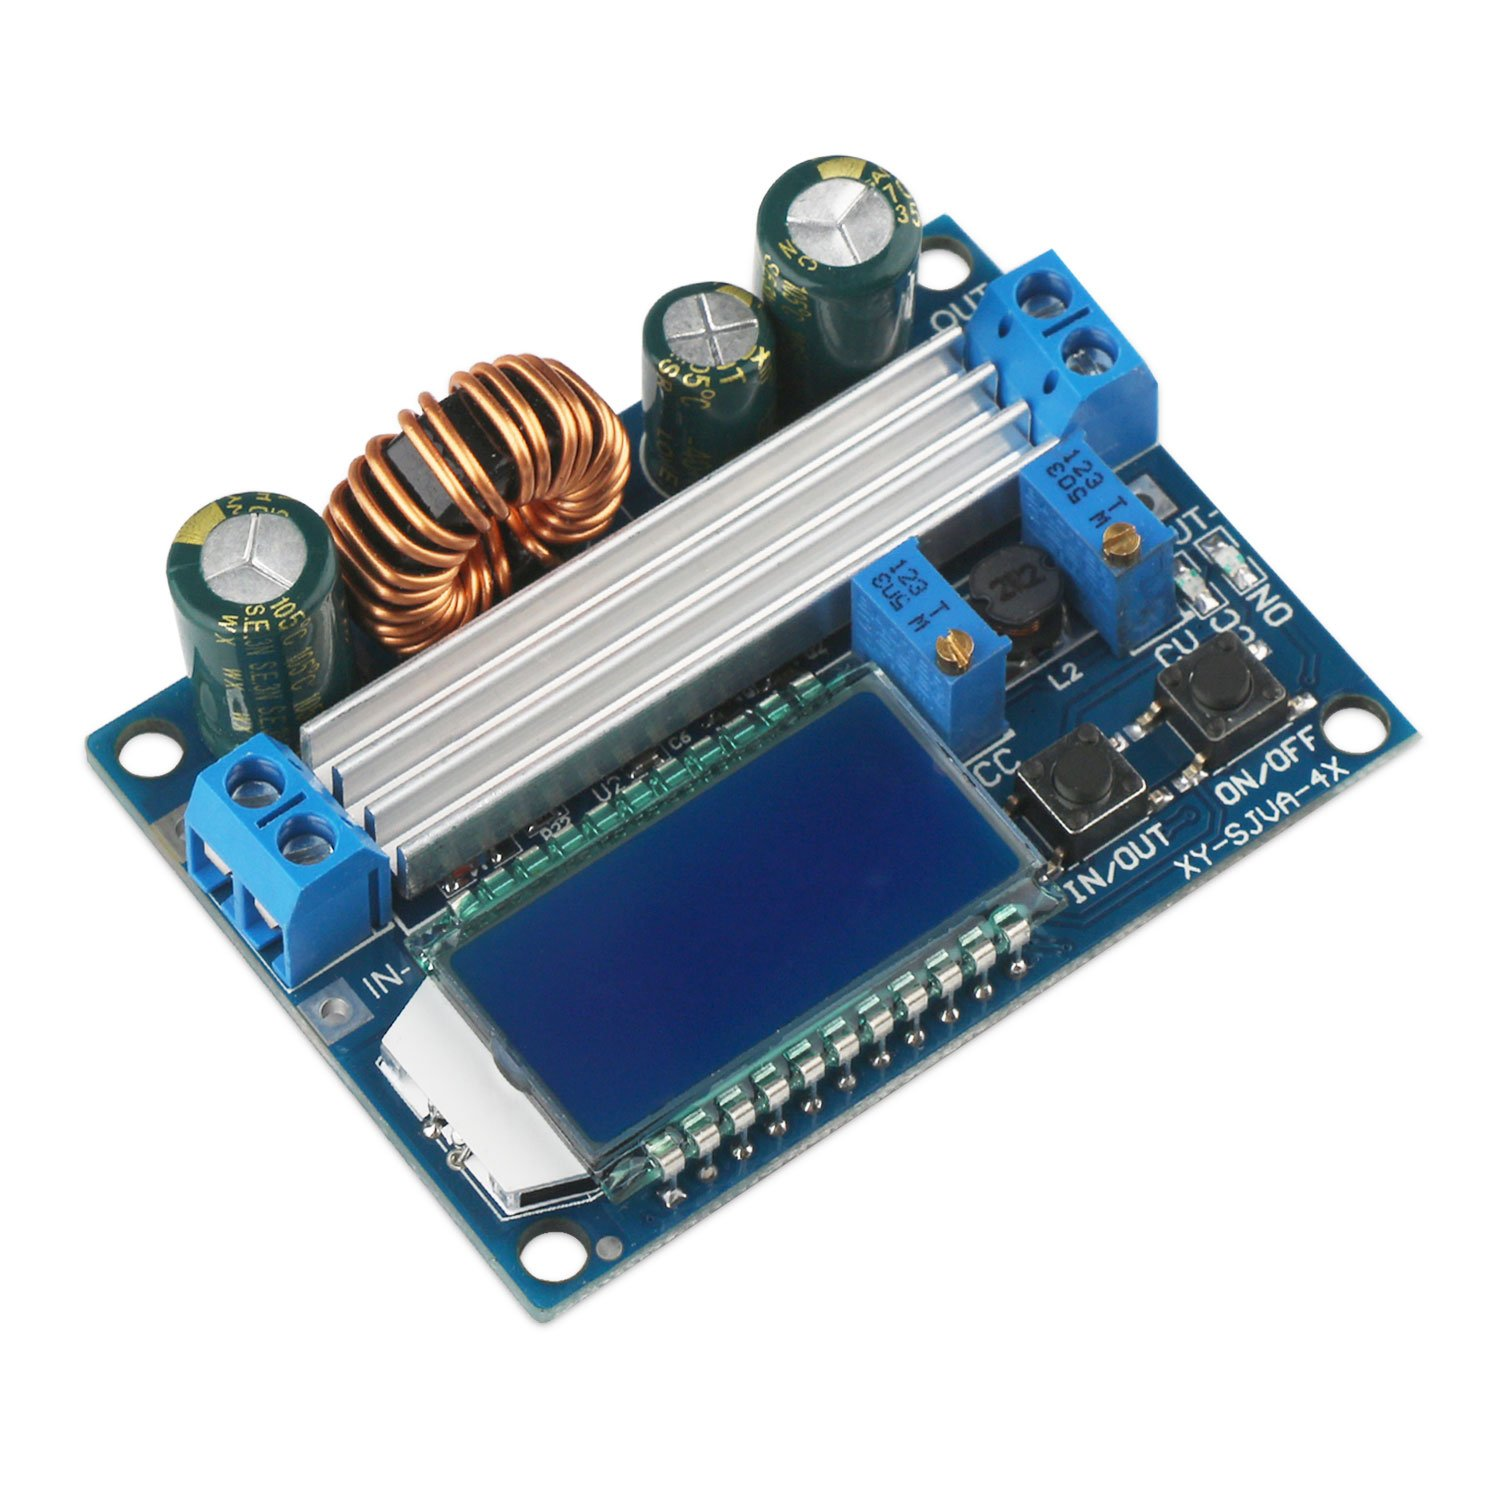 Buck Boost Converter Display Drok Board Dc Protection Circuit Module Pcb For 37v Of Liion Battery 20a Limit 55 30v 12v To 05 5v 24v Adjustable Constant Current Voltage Step Up Down Regulator 3a 35w Power Supply